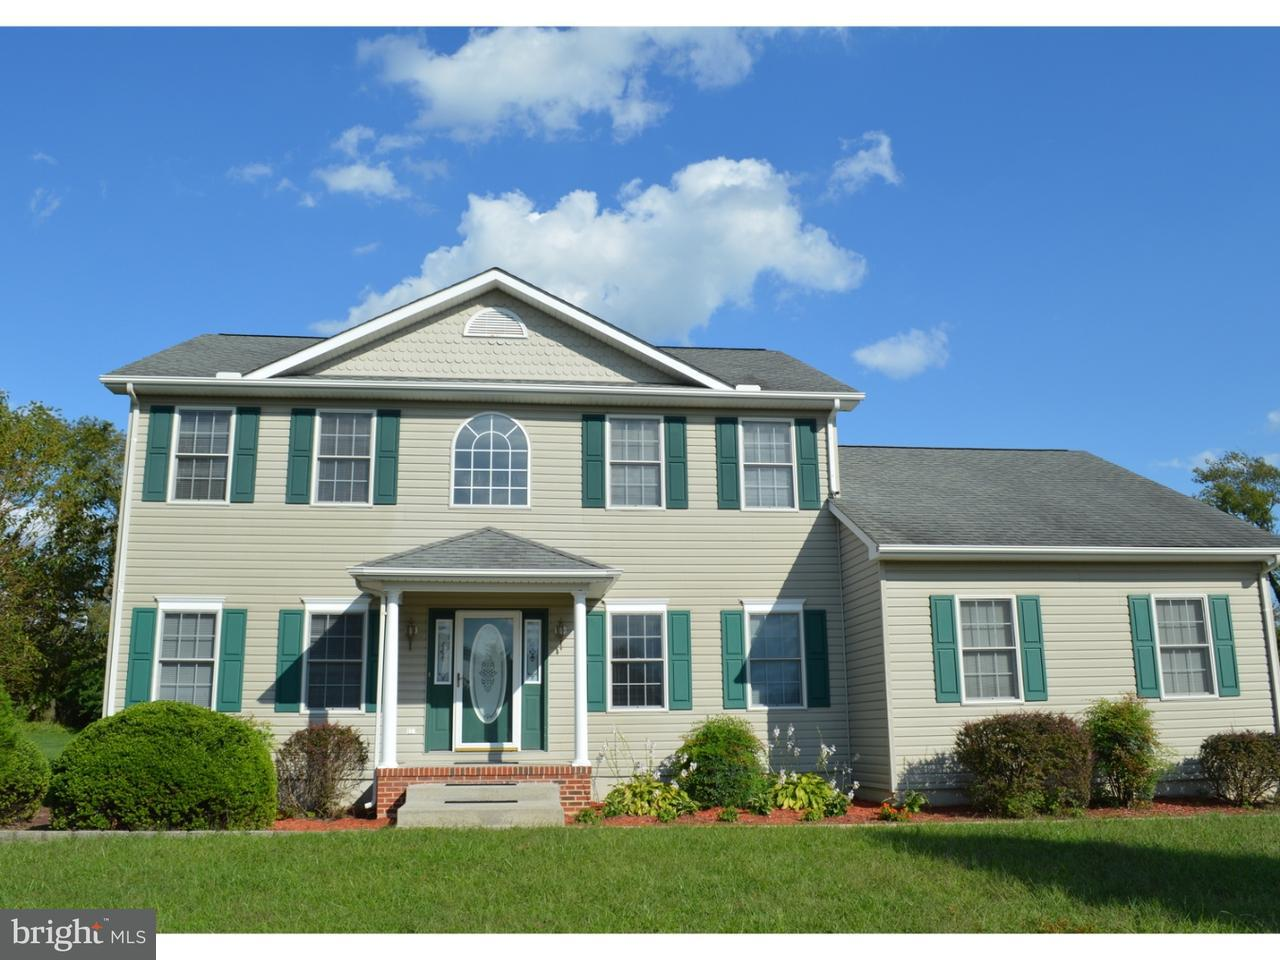 Single Family Home for Sale at 6 MANNERING Drive Camden, Delaware 19901 United States